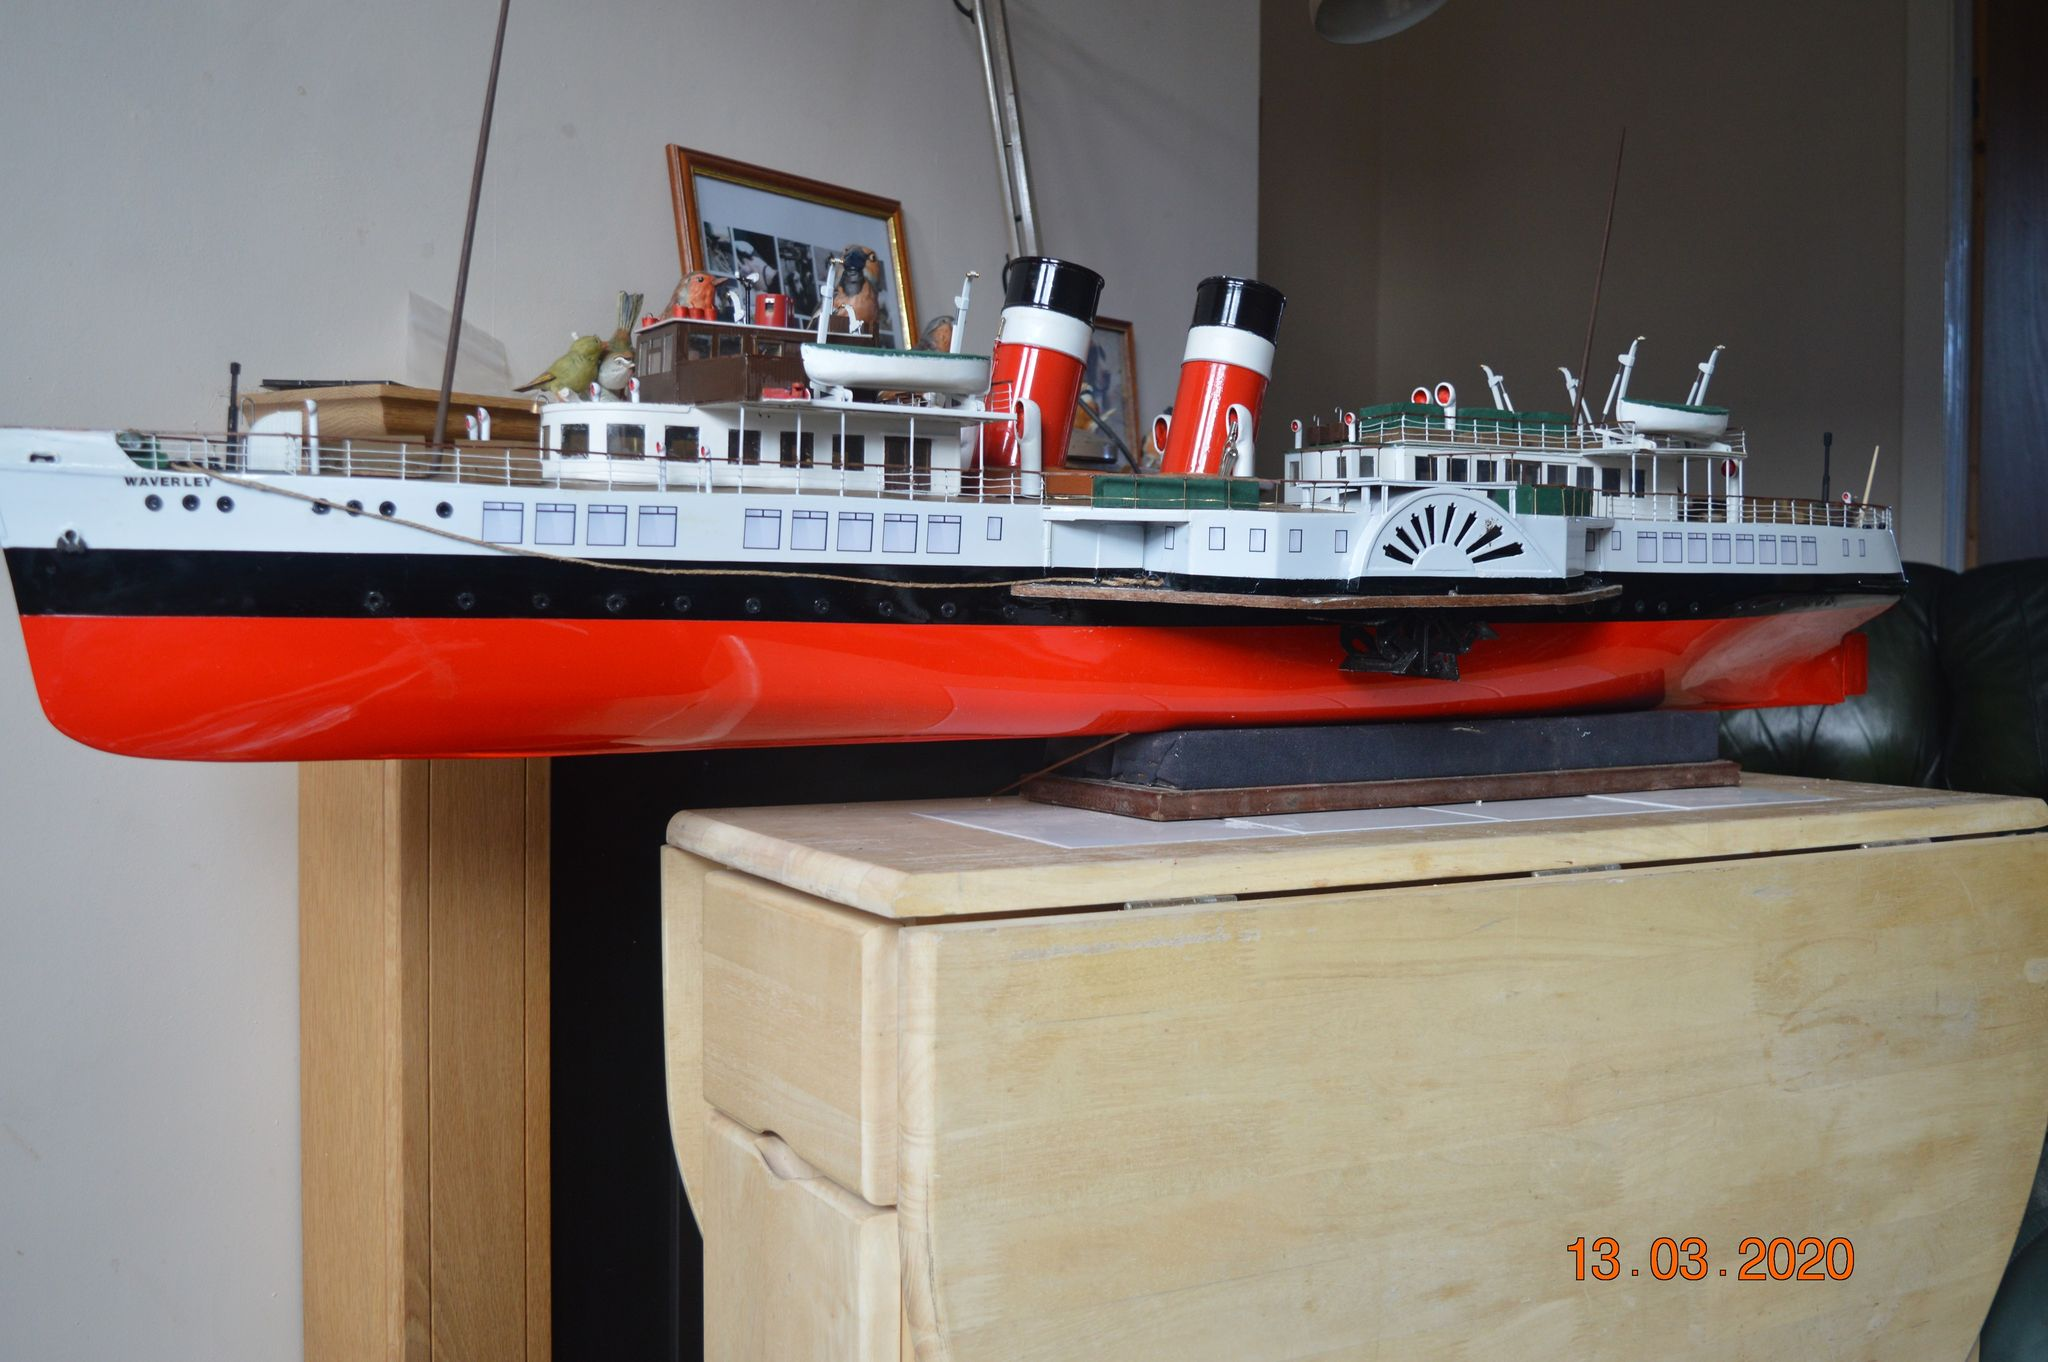 waverley finished.jpg